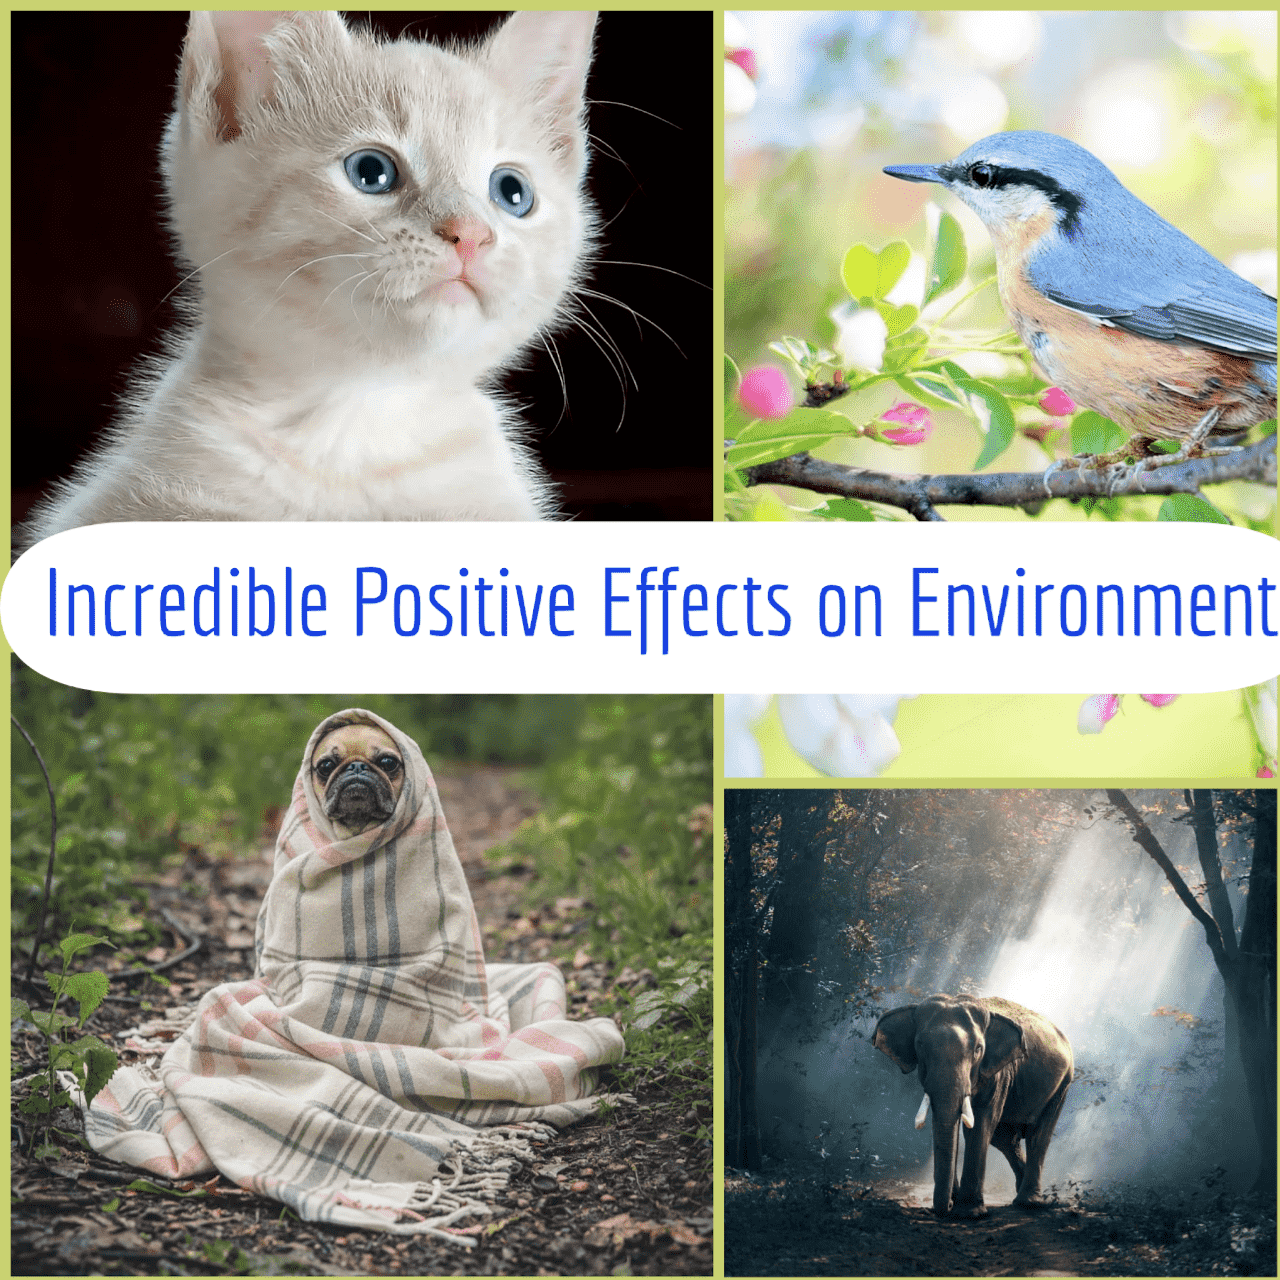 Incredible Positive Effects on Environment